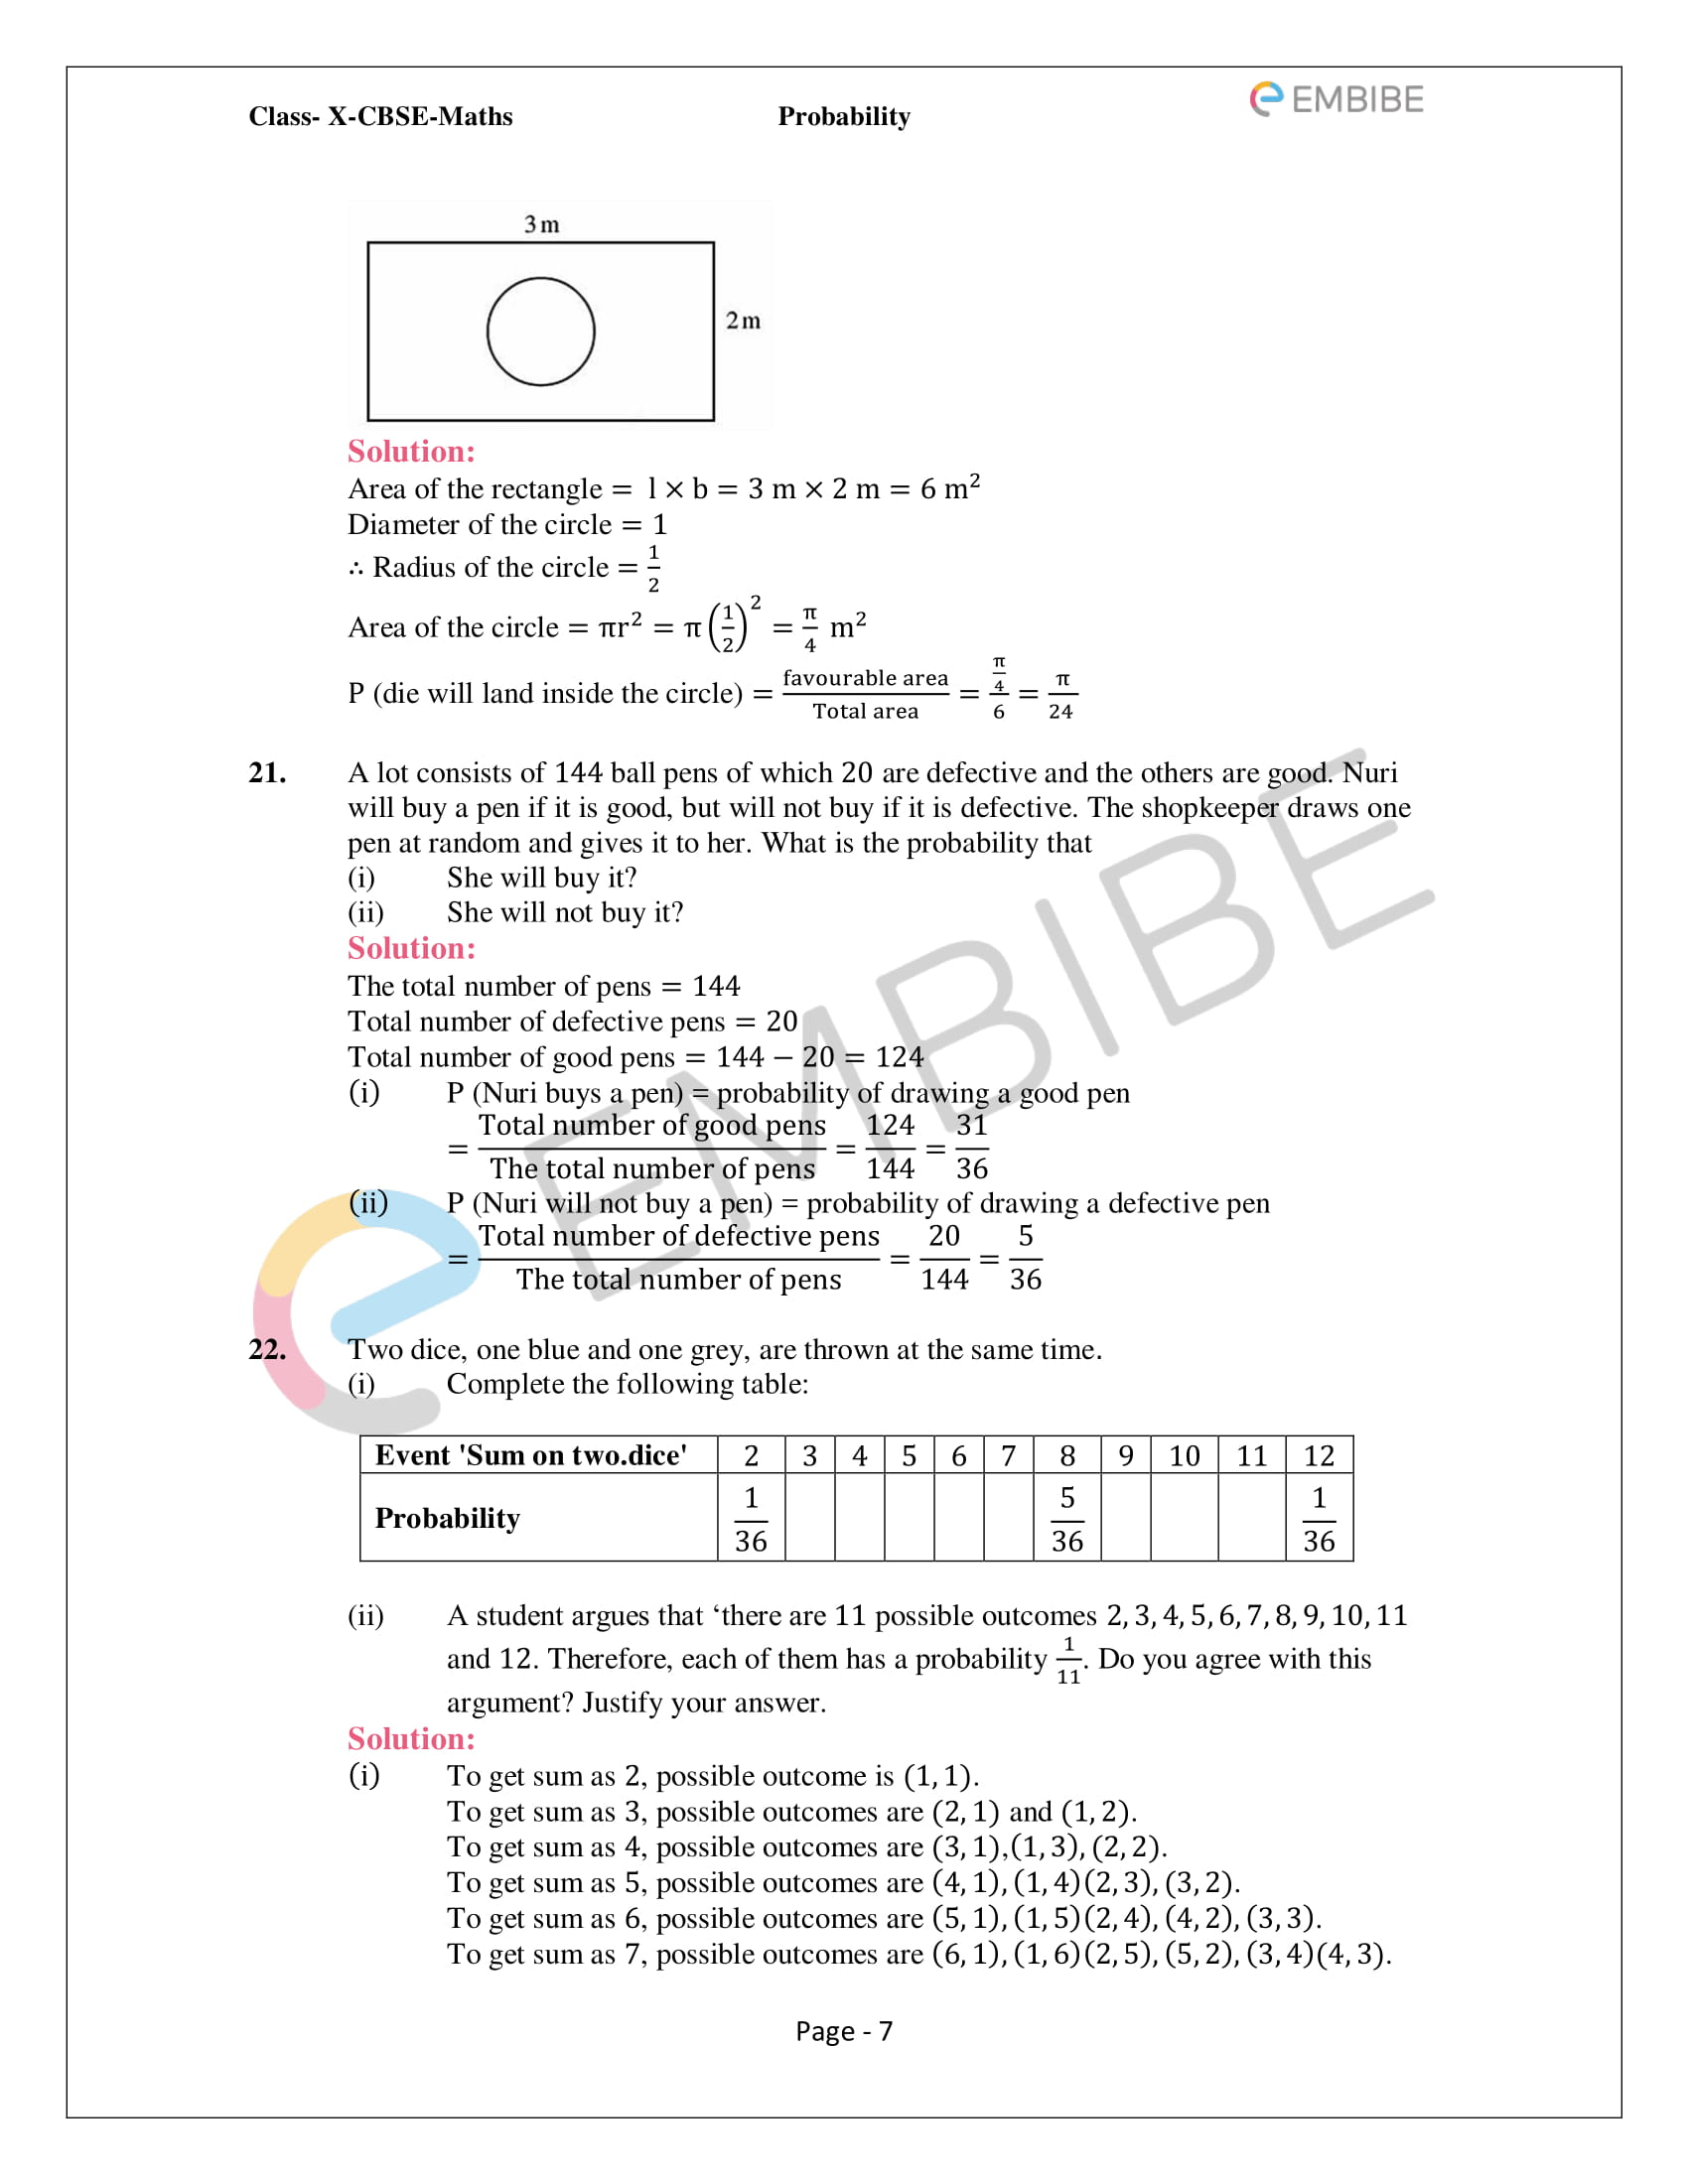 CBSE NCERT Solutions For Class 10 Maths Chapter 15 - Probability - 7